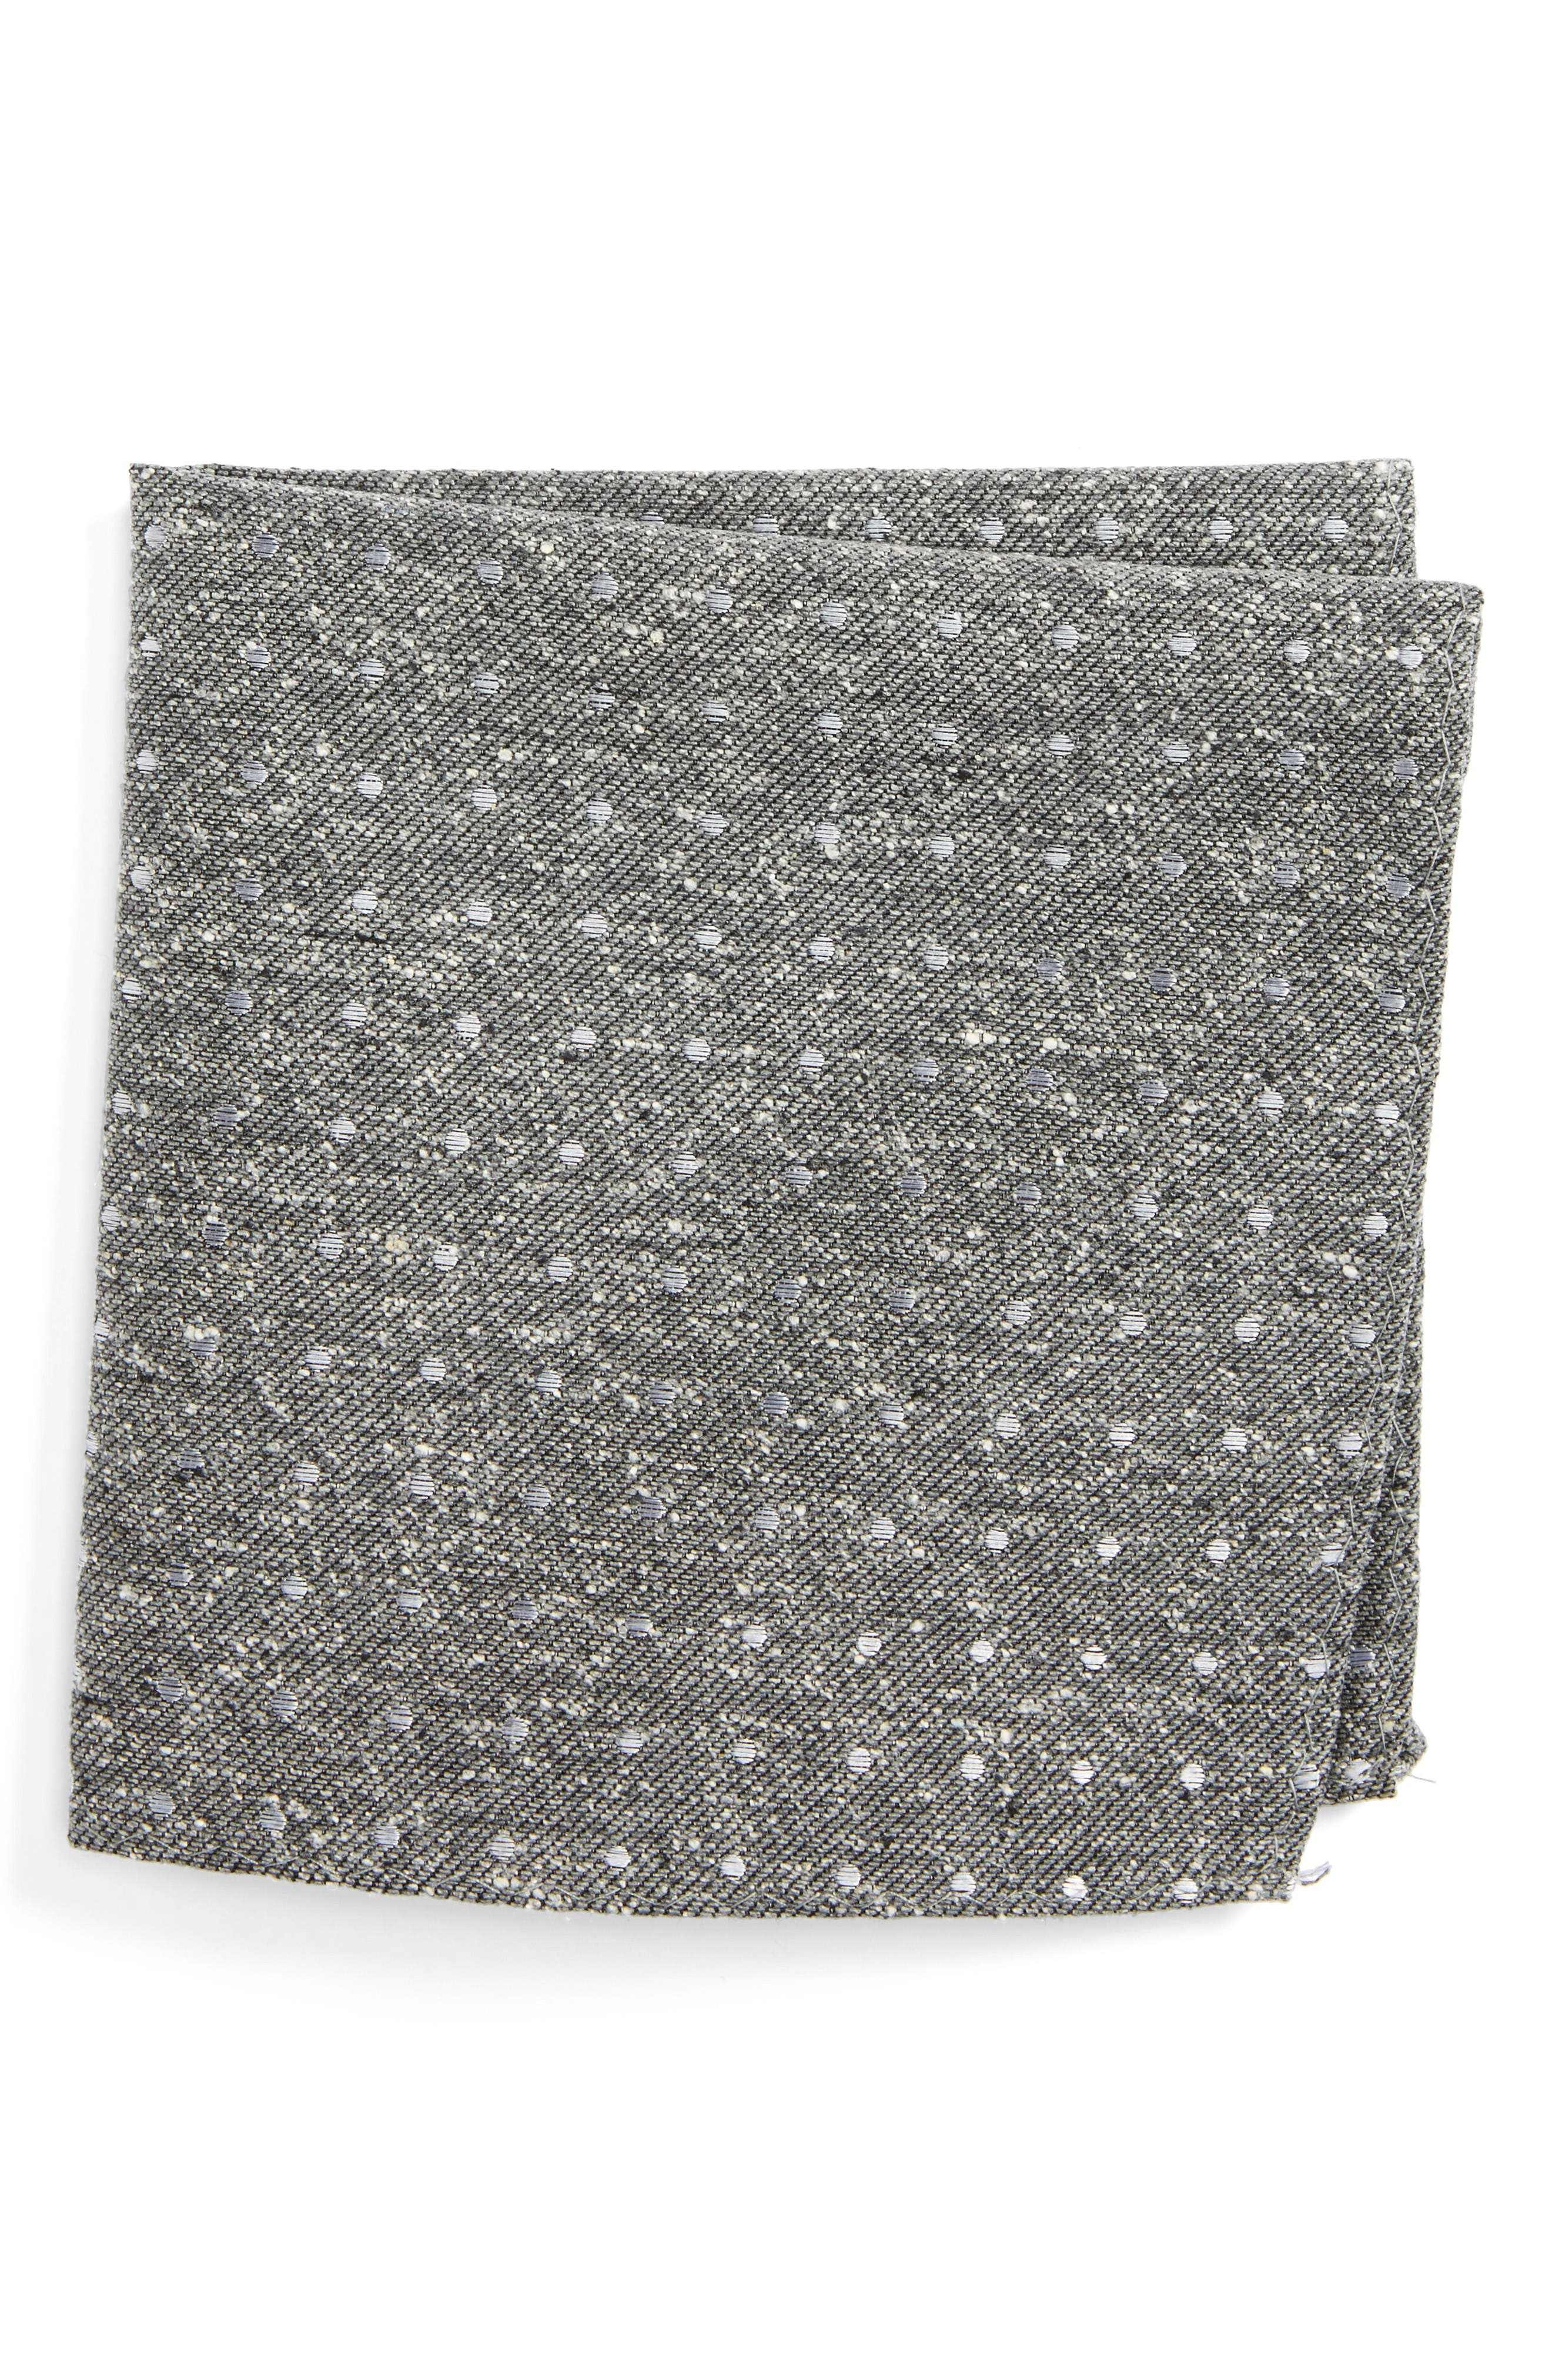 Knotted Dots Silk Pocket Square,                         Main,                         color, Grey